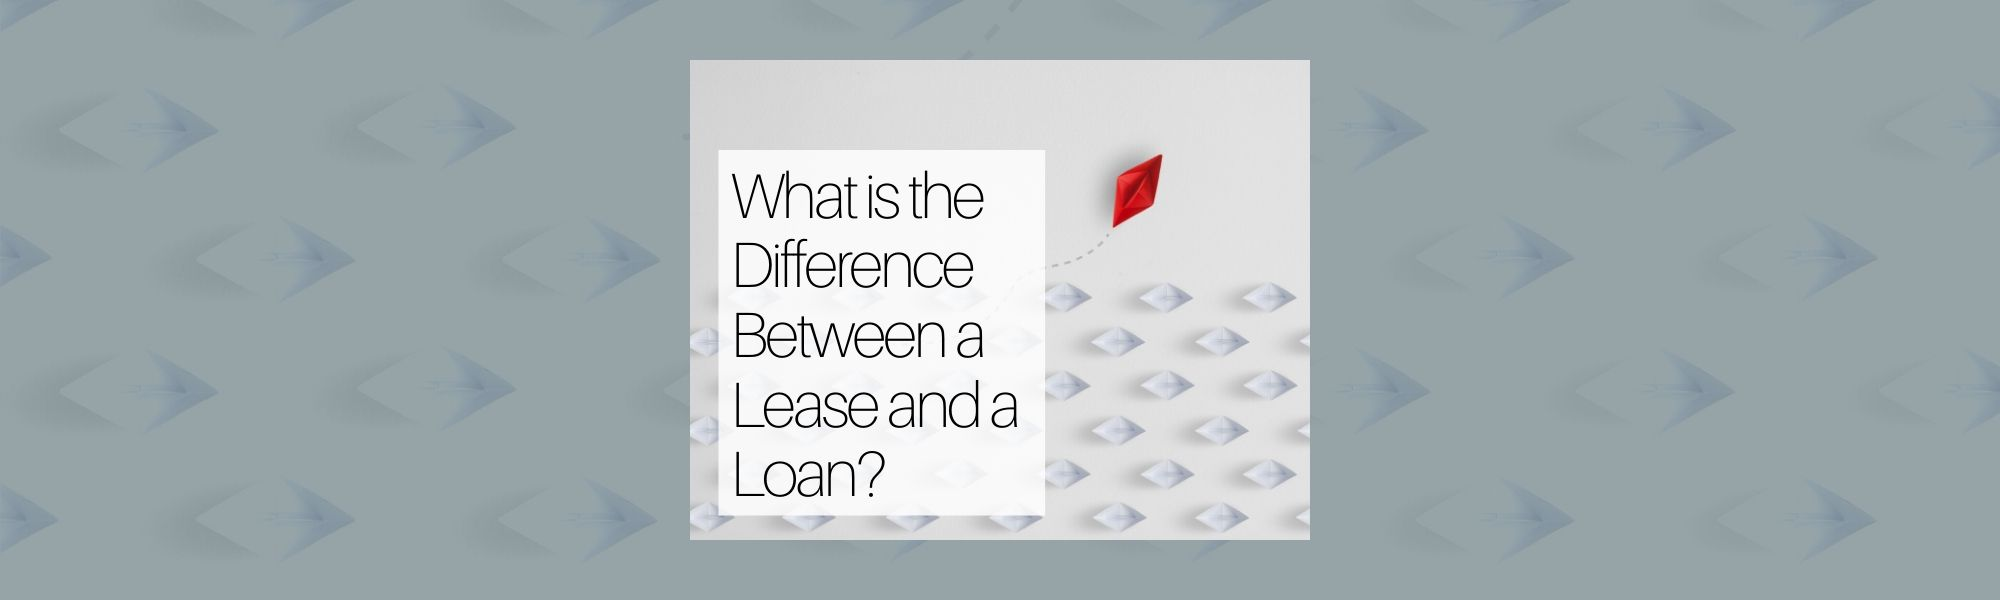 What is the Difference Between a Lease and a Loan?